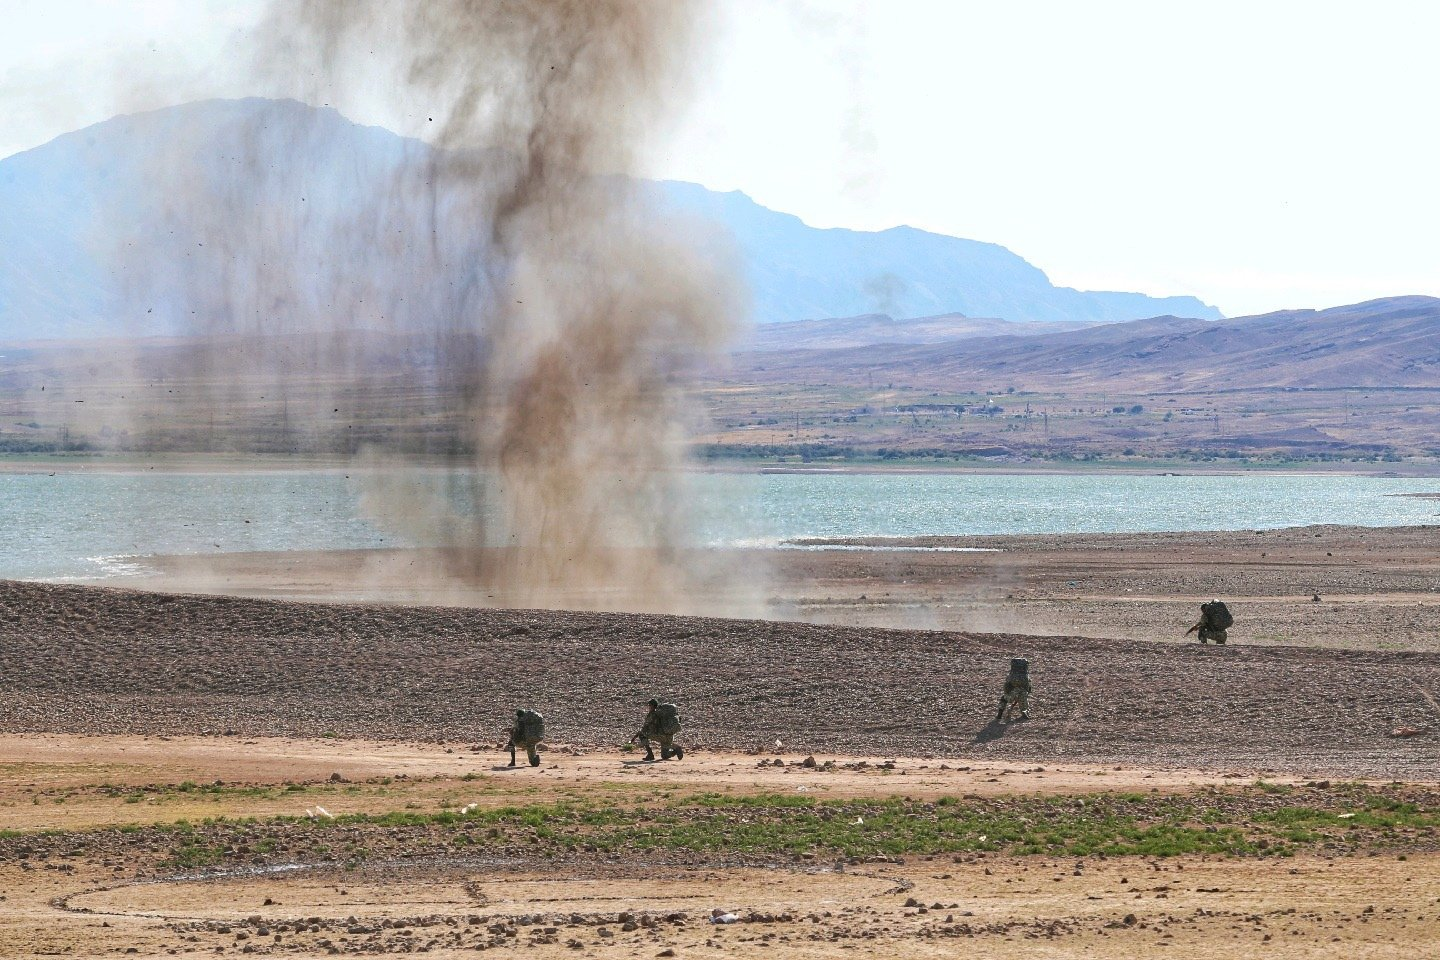 A military exercise by the Iranian army in the northwest of Iran, close to the border with Azerbaijan, Oct. 1, 2021. (EPA Photo)